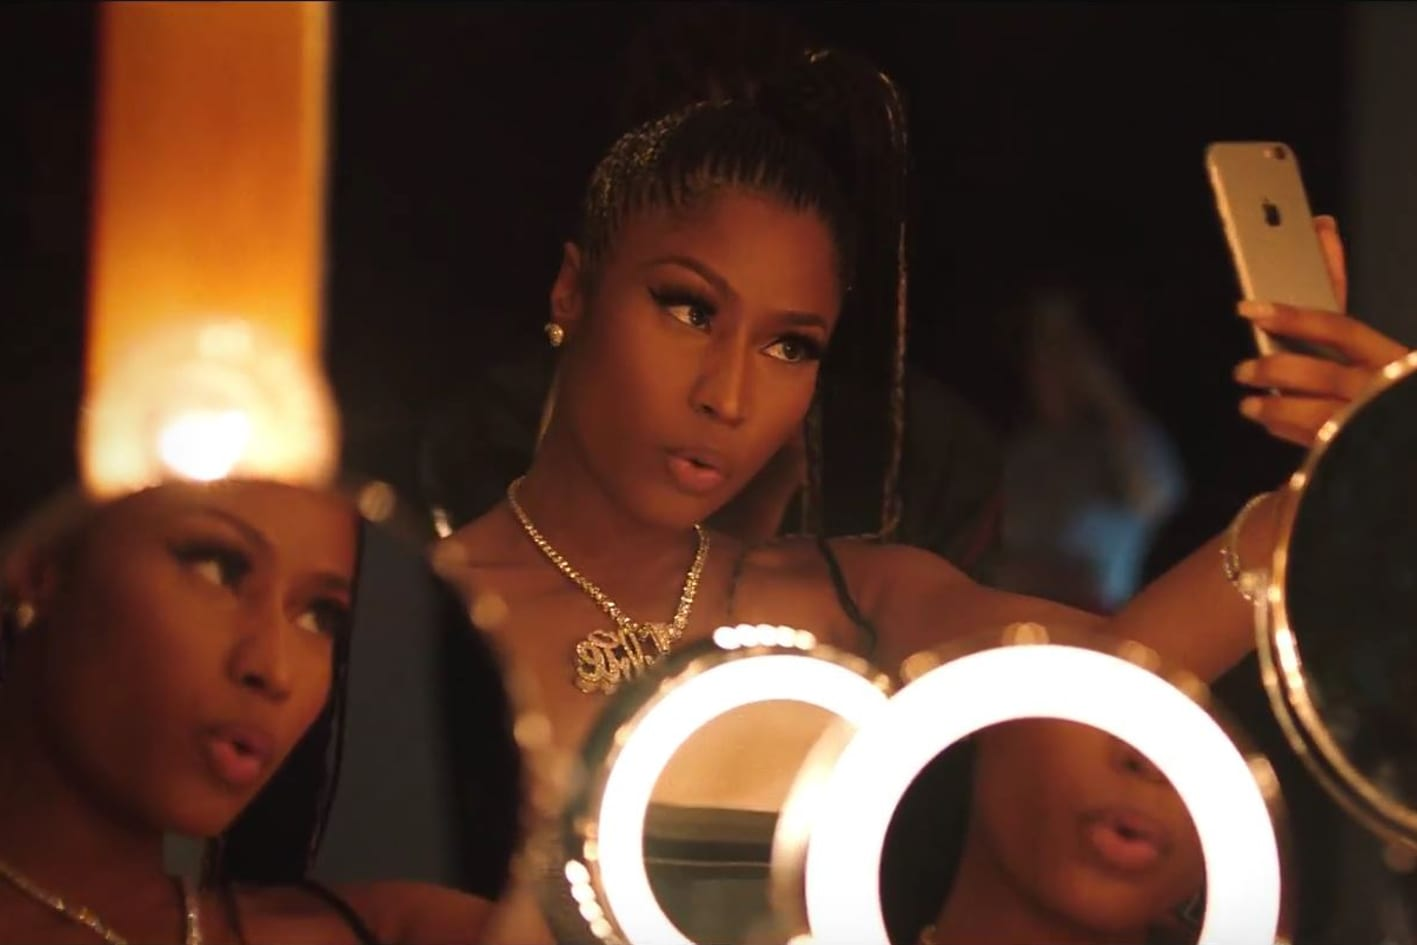 Run Up : Le Clip Addictif De Major Lazer Et Nicki Minaj Réalisé Par Le Collectif De Stromae